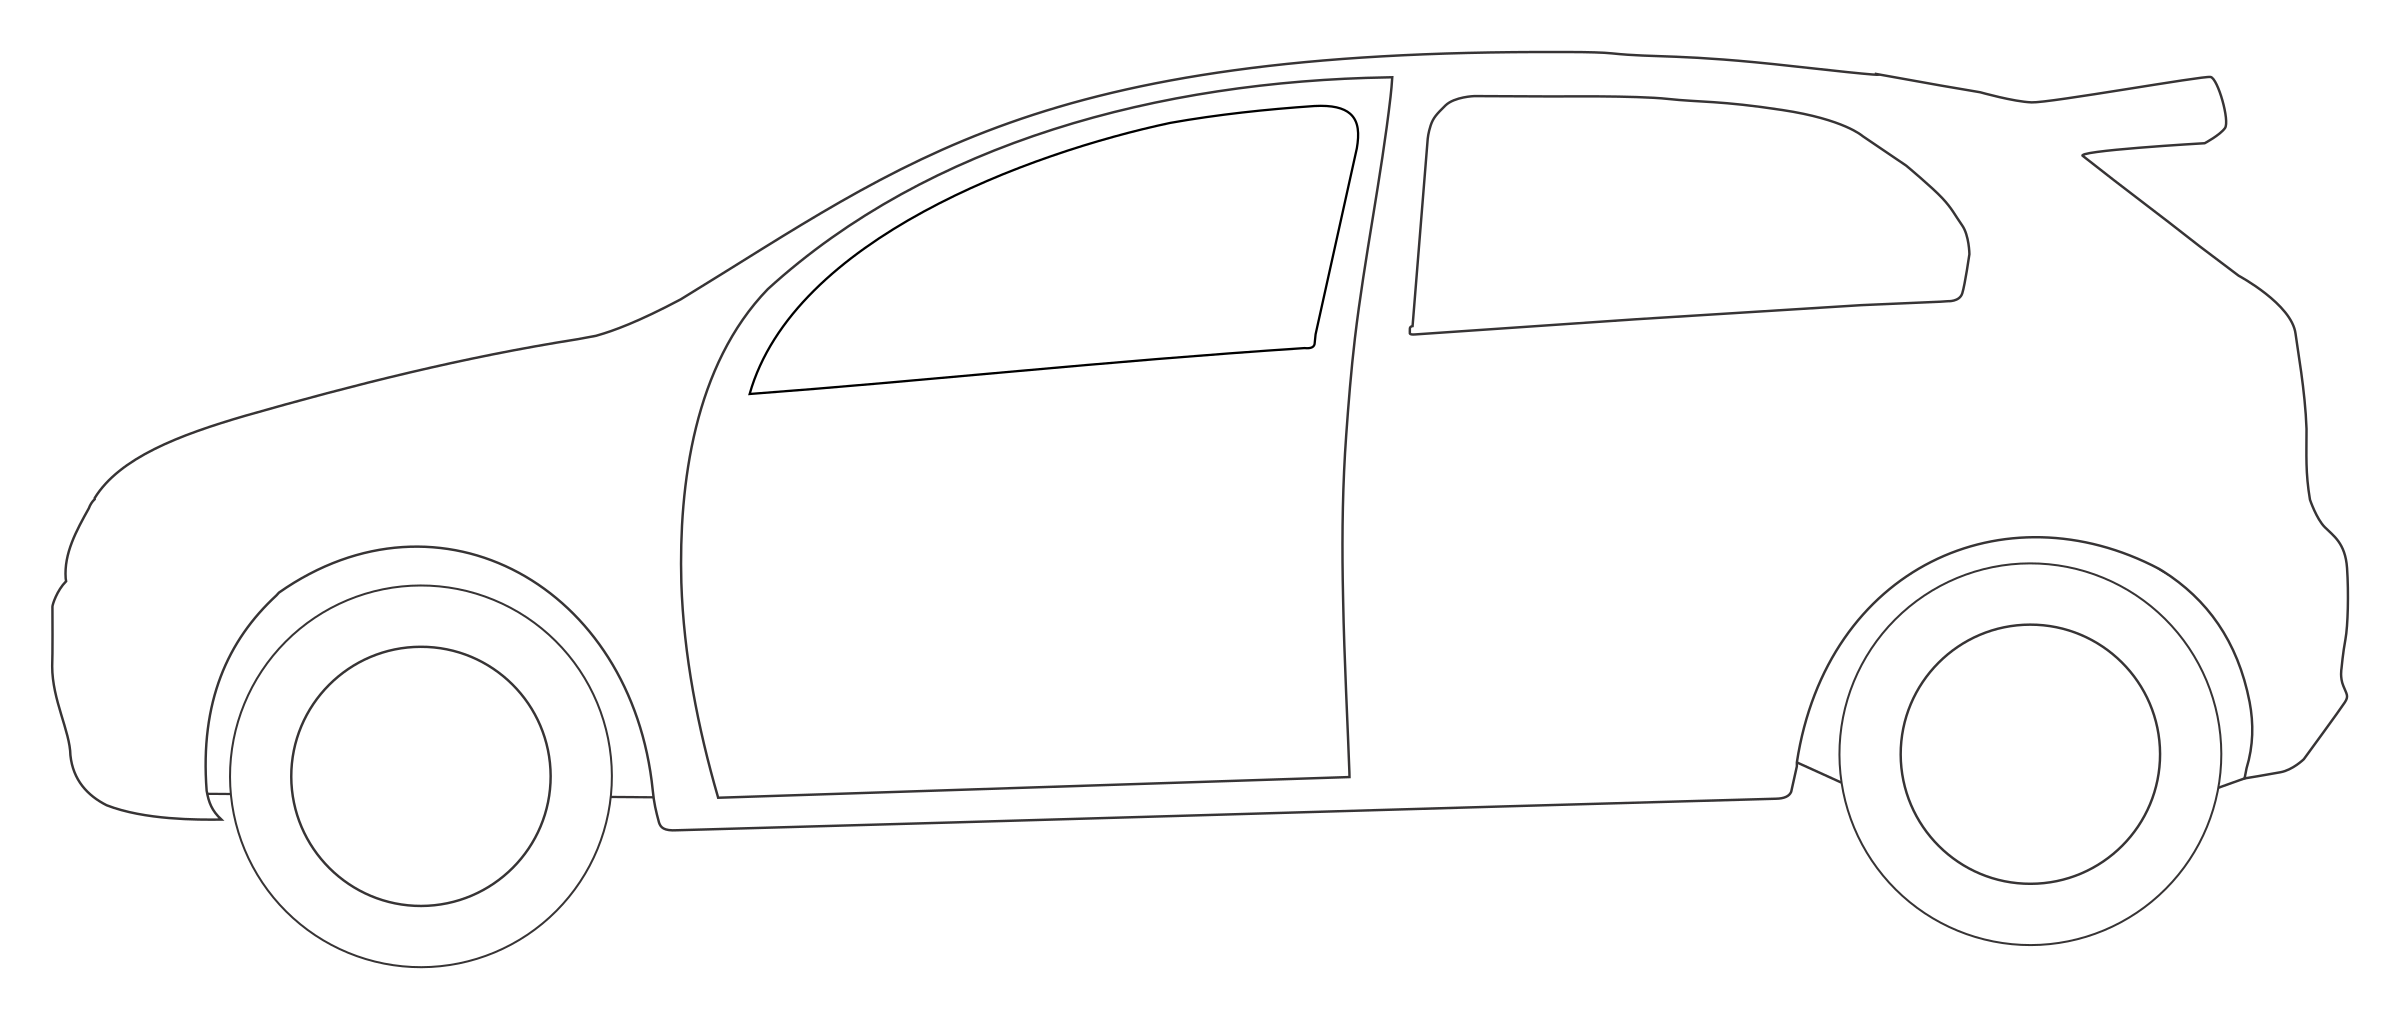 . Clipart car shape